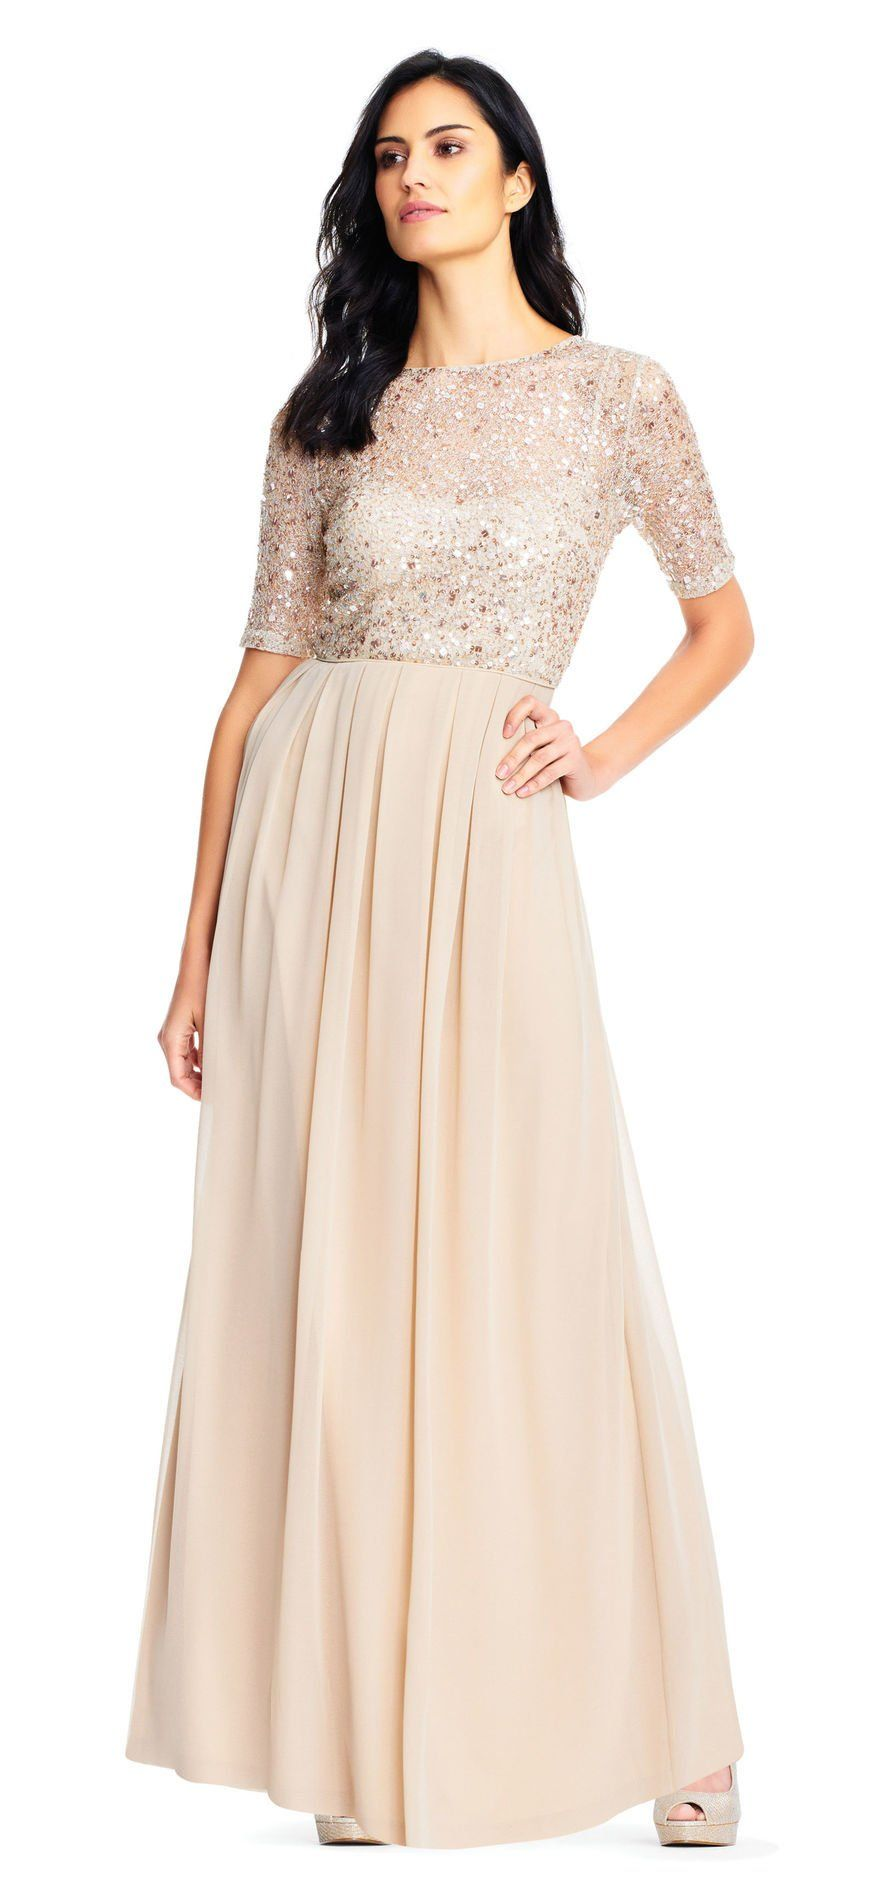 58618688fd31 Short Sleeve Chiffon Dress with Sequin Lace Bodice | aria & brian 11 ...